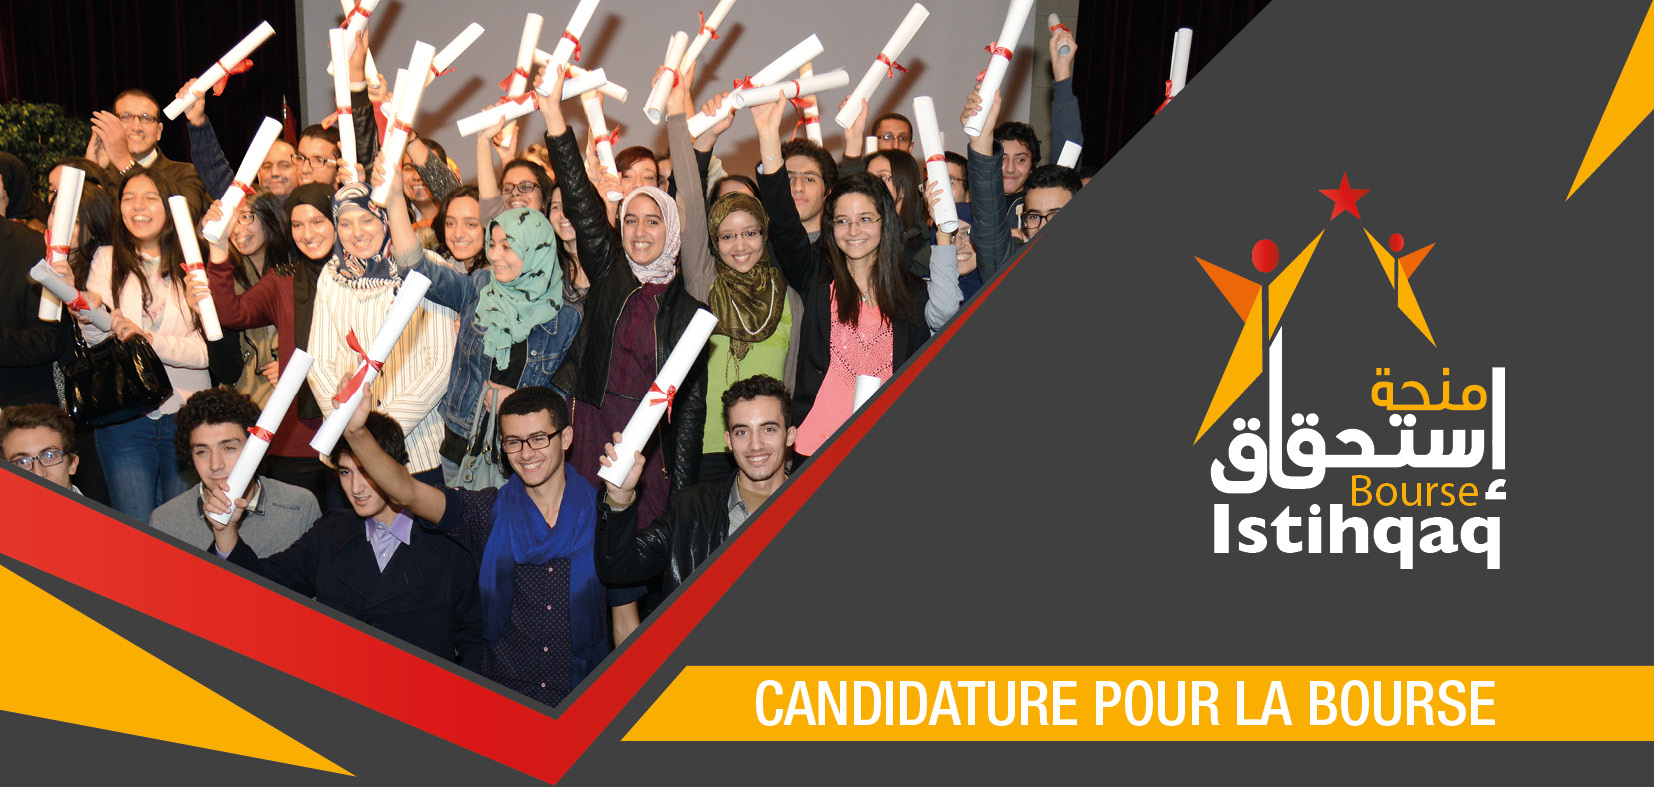 candidature-Bourse-Istihqaq-fr